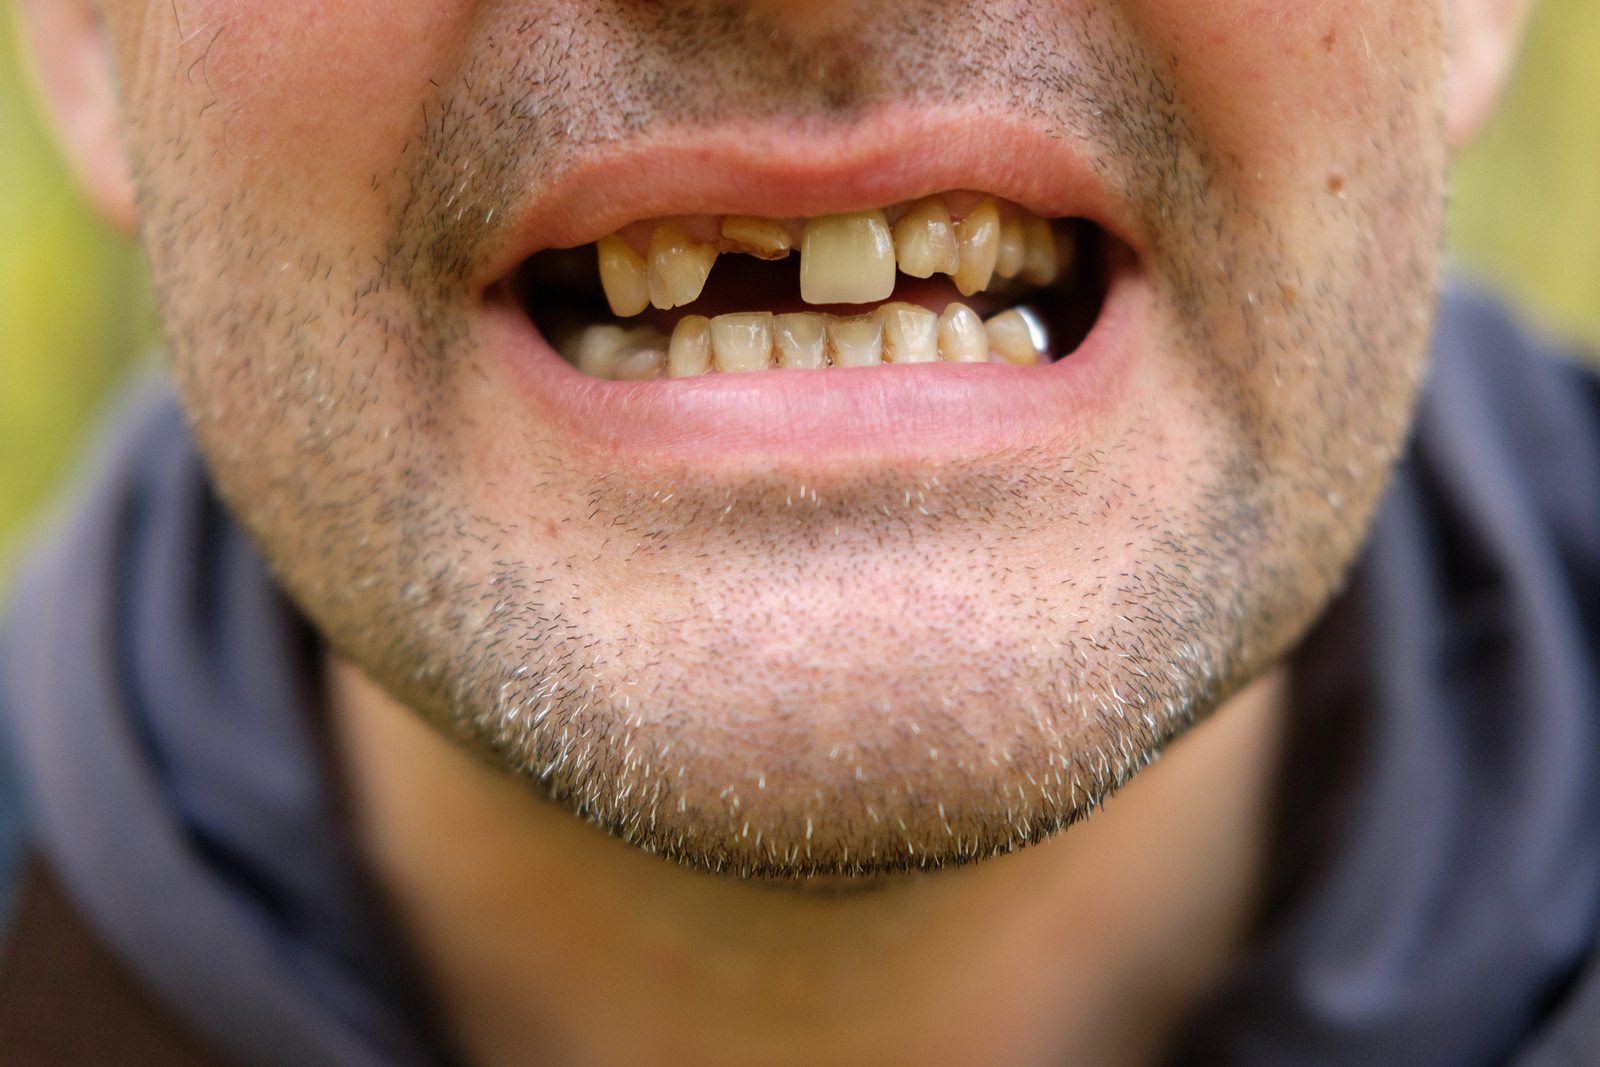 Study Tooth Loss In Middle Age Linked To Heart Disease